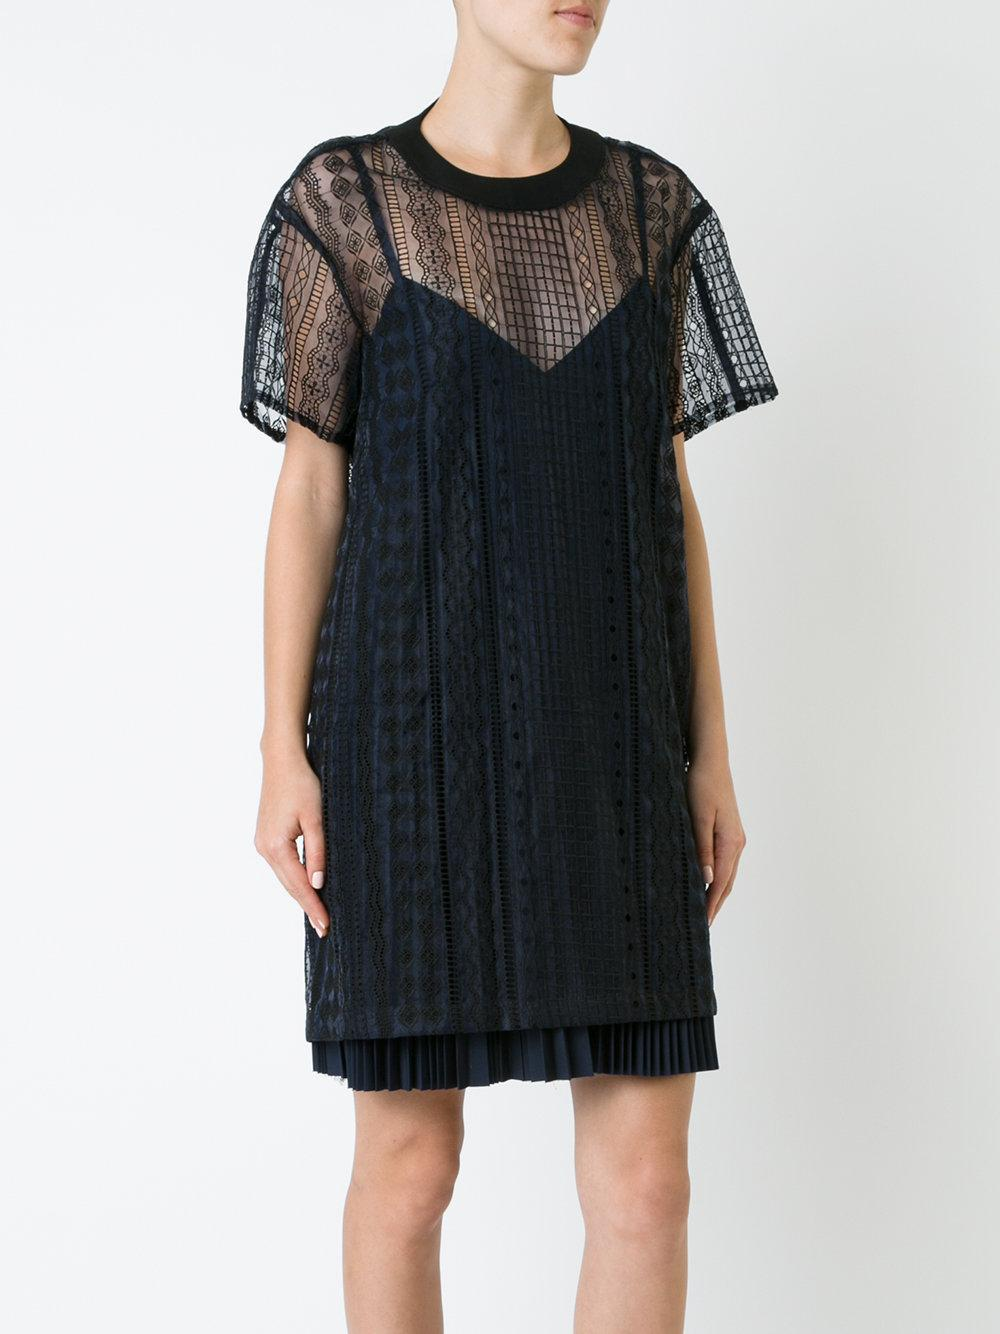 4f2579c2d85 Sacai Layered Open Embroidery Dress in Black - Lyst